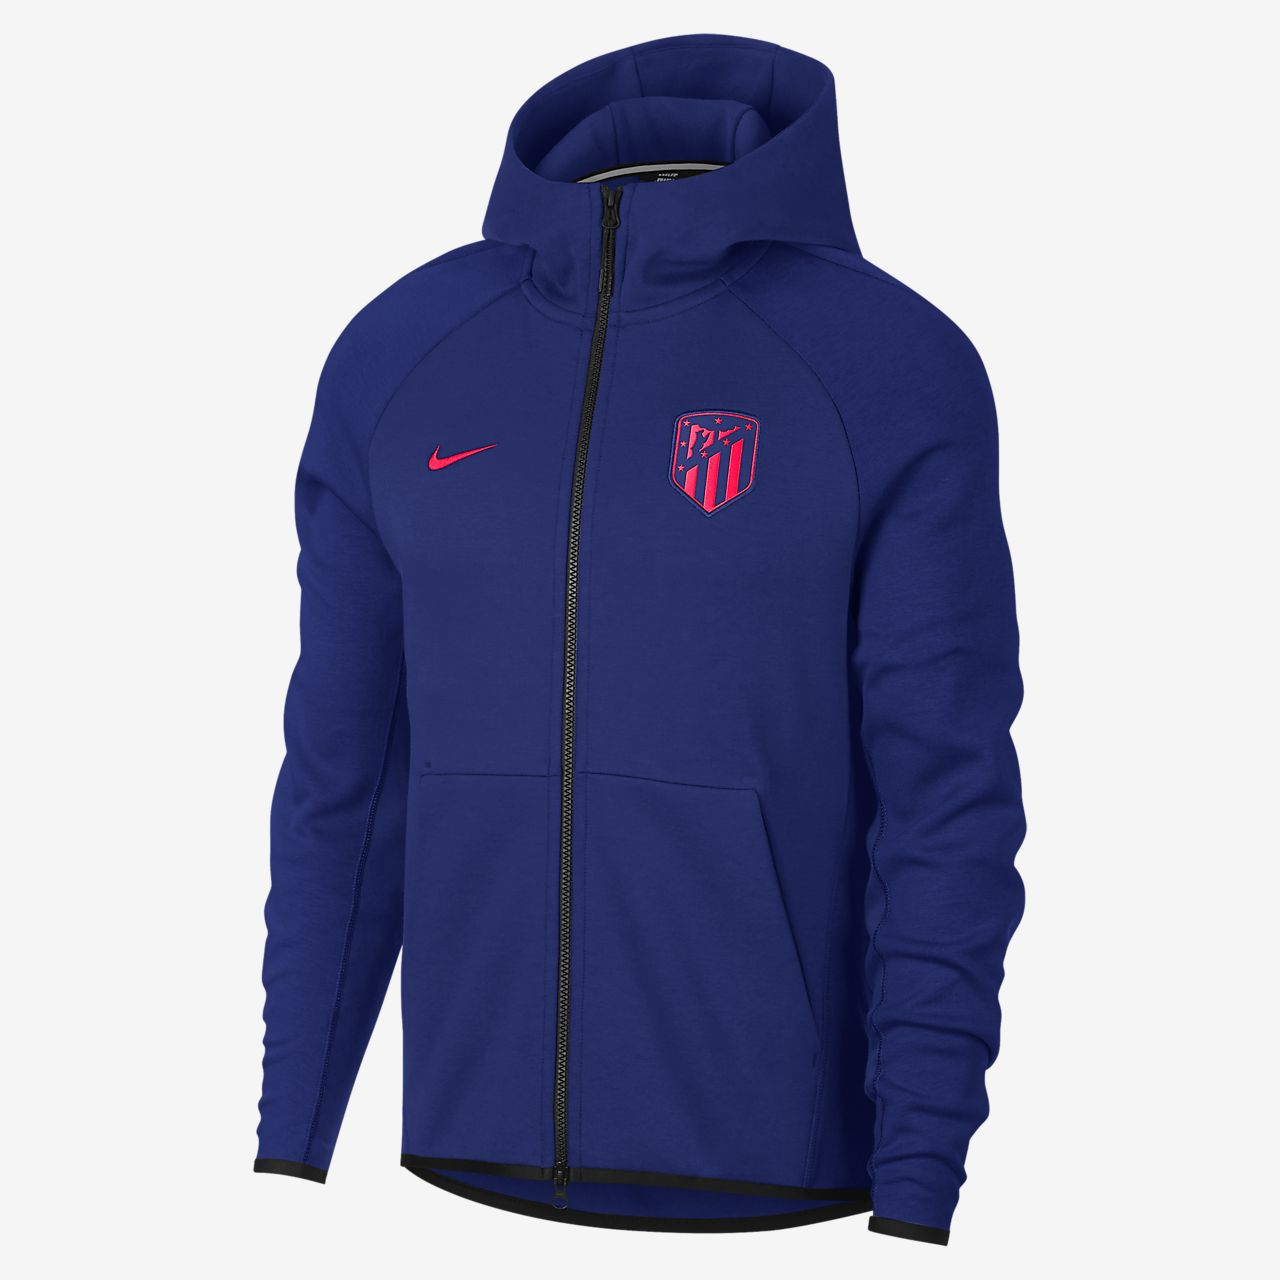 Atlético de Madrid Tech Fleece Men's Full-Zip Hoodie